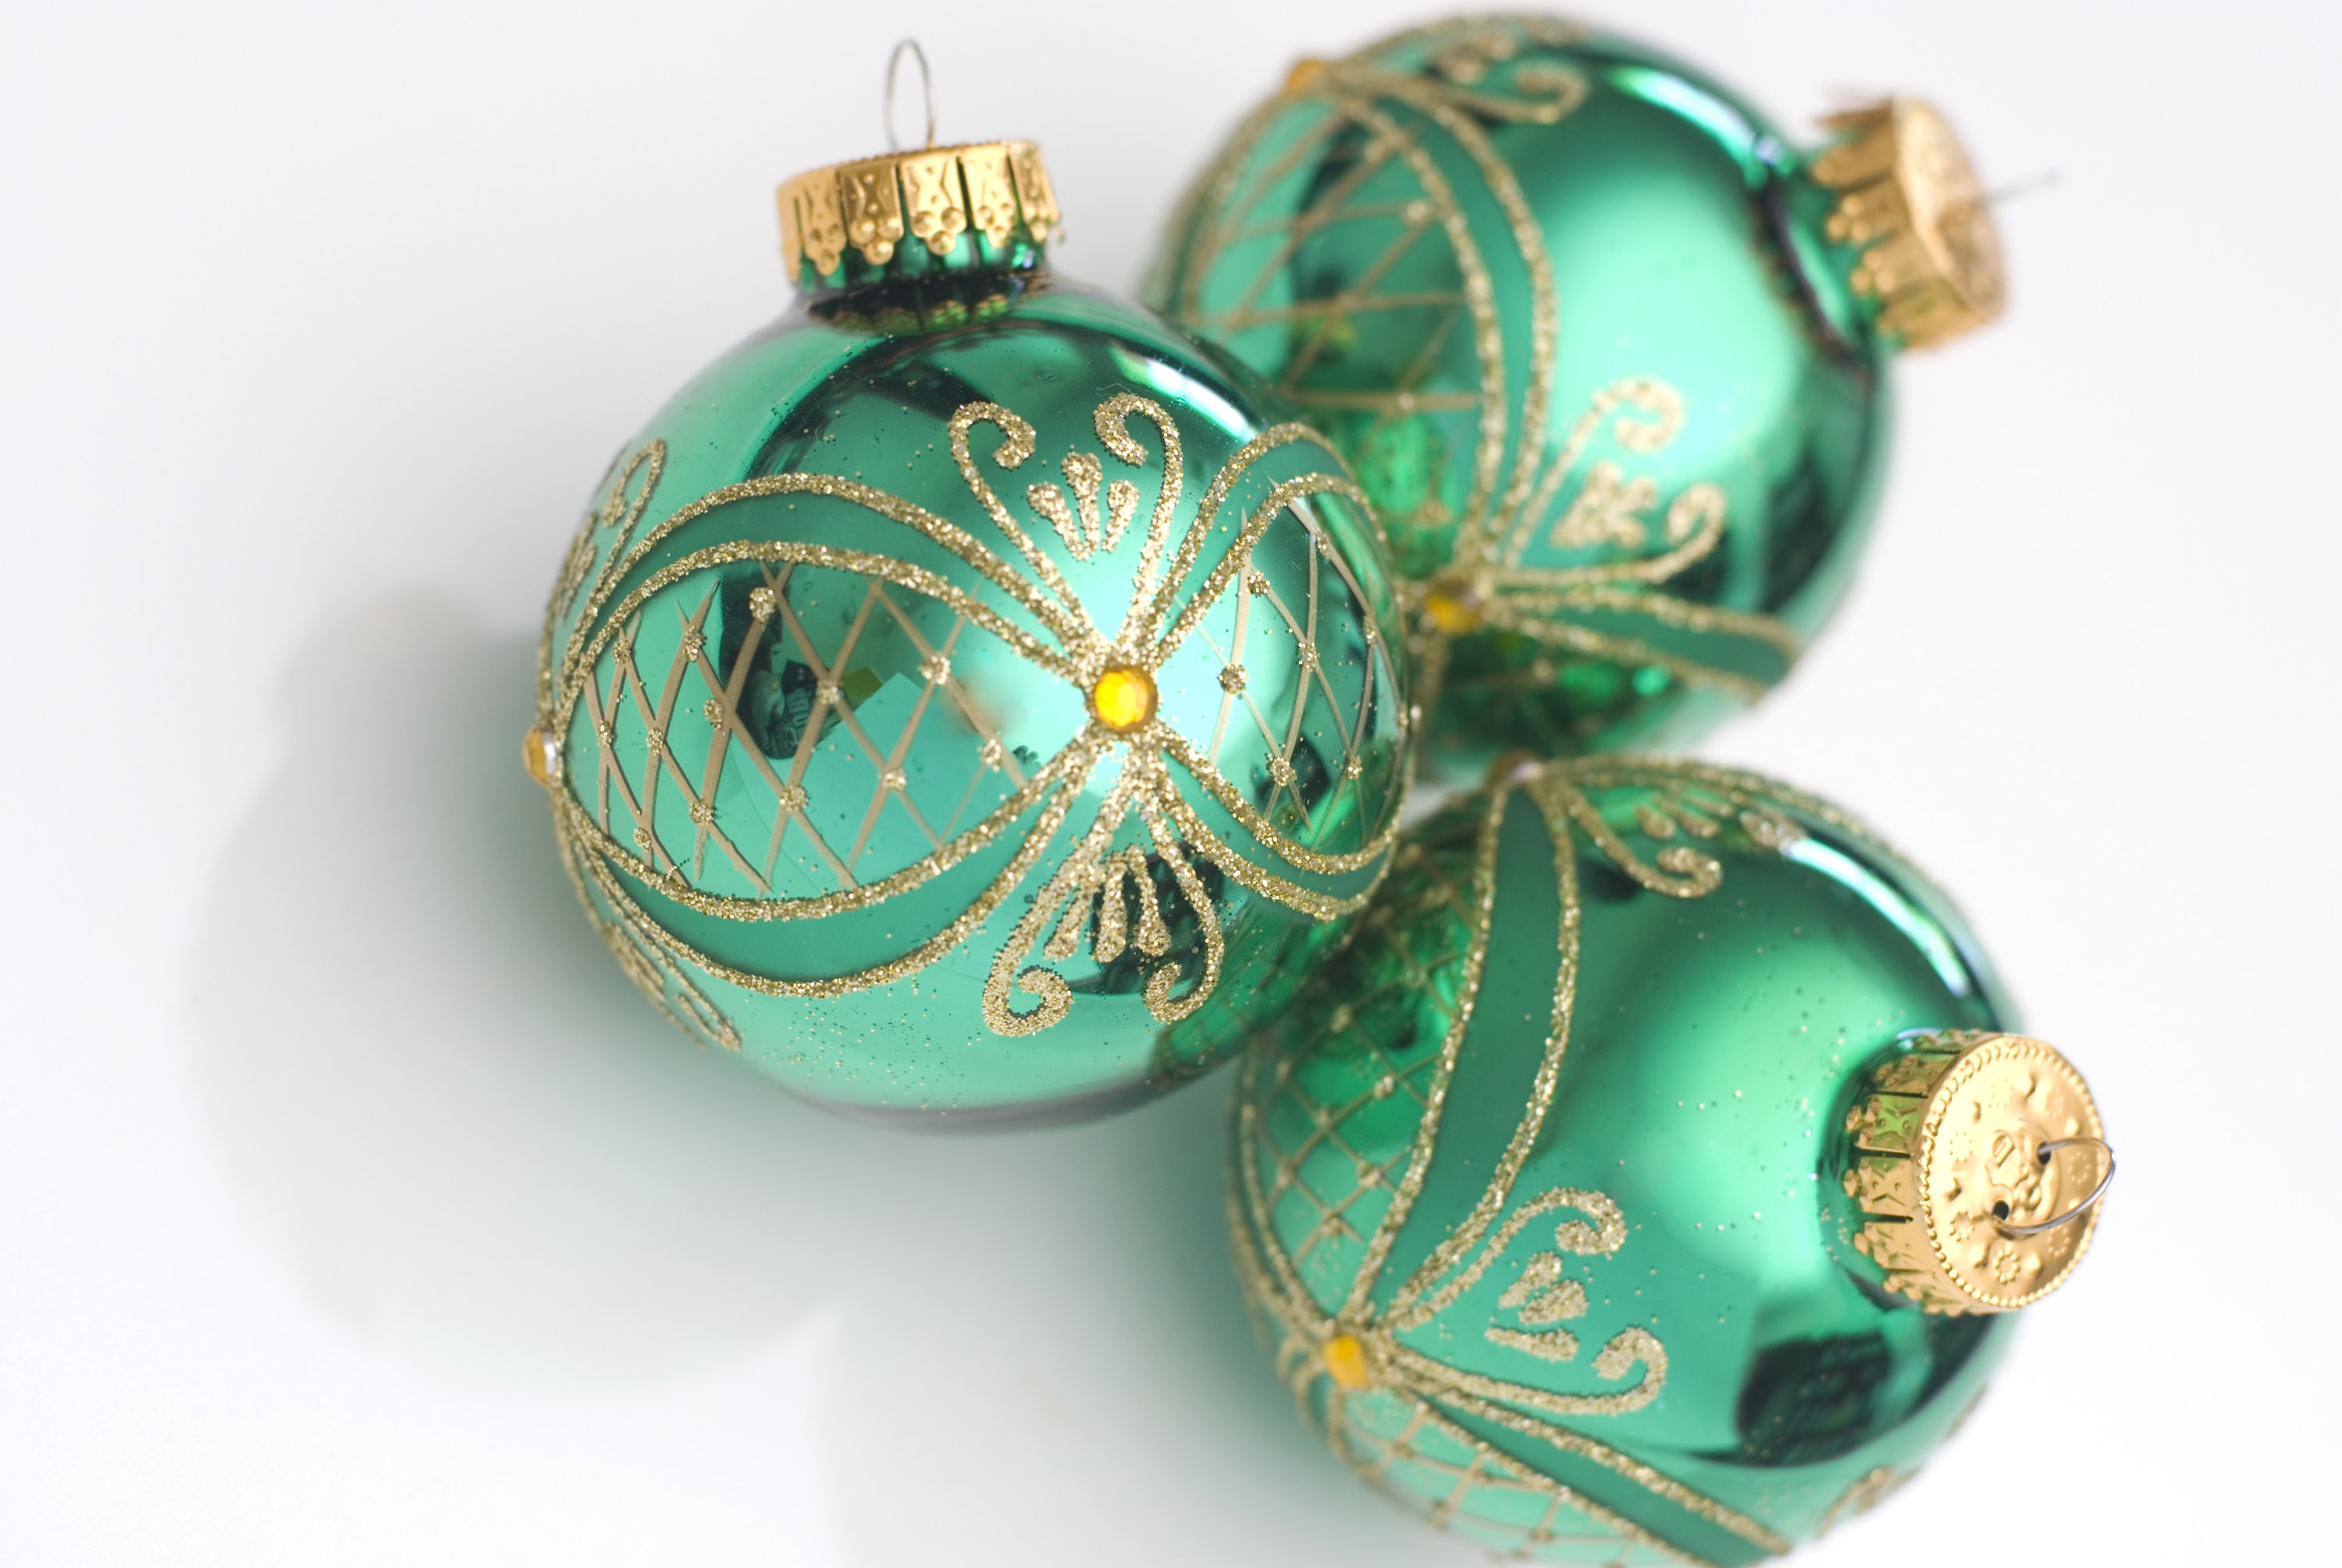 three green glass christmas ornaments on a plain white background narrow depth of field image - Green Christmas Decorations